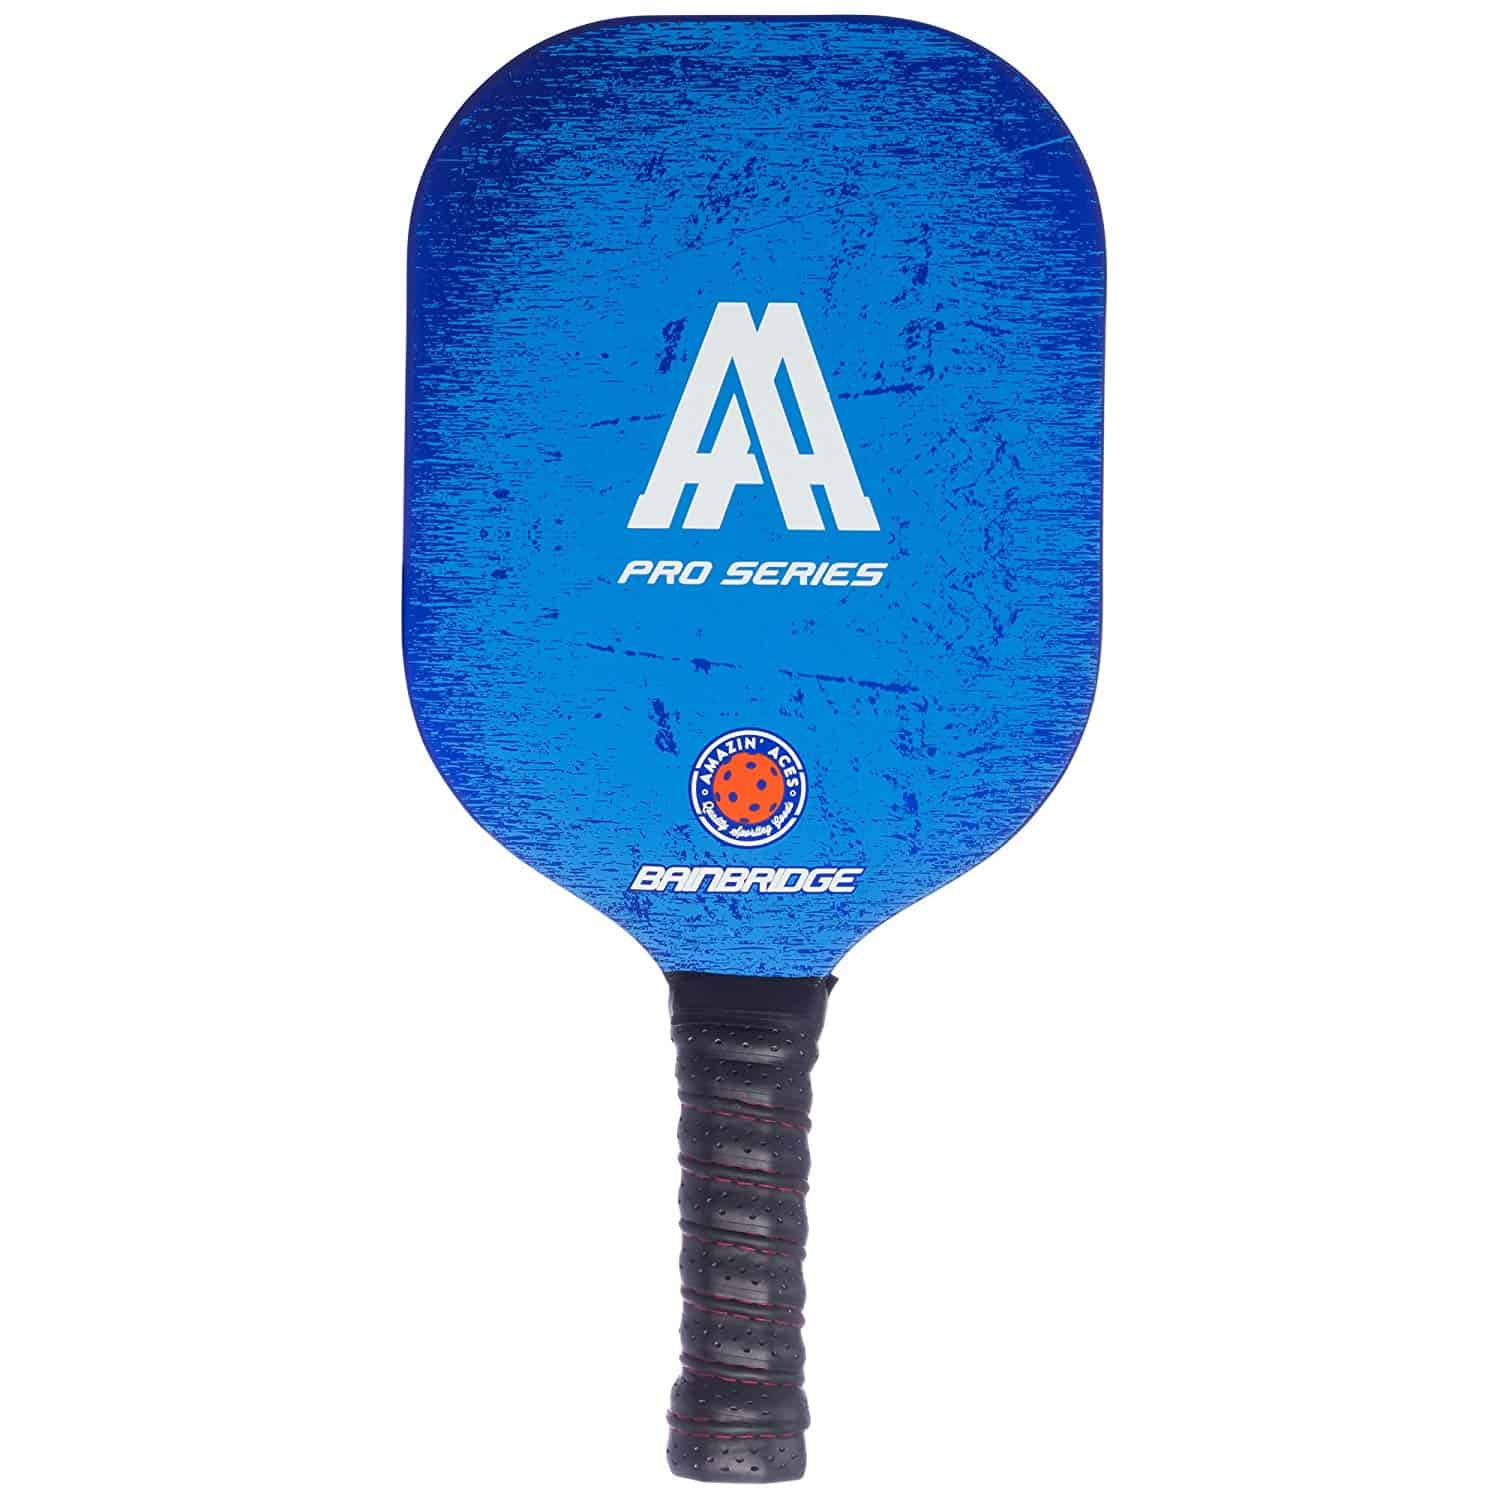 Amazin' Aces BAINBRIDGE Pickleball Paddle (Pro Series)